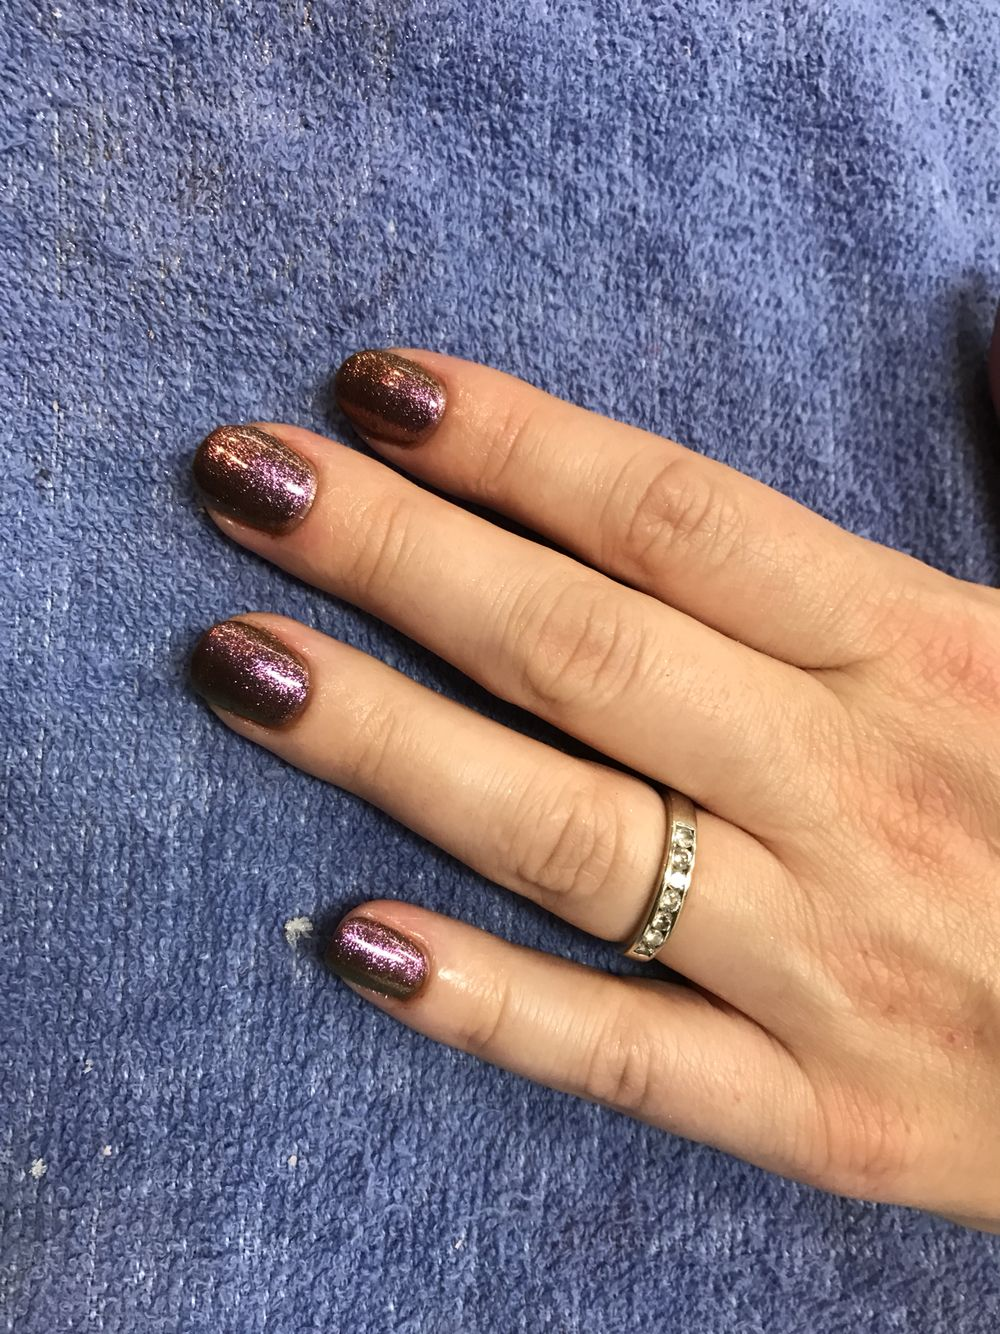 We did a brown shellac with a copper esque additive and this is how it turned out! I'm in love!